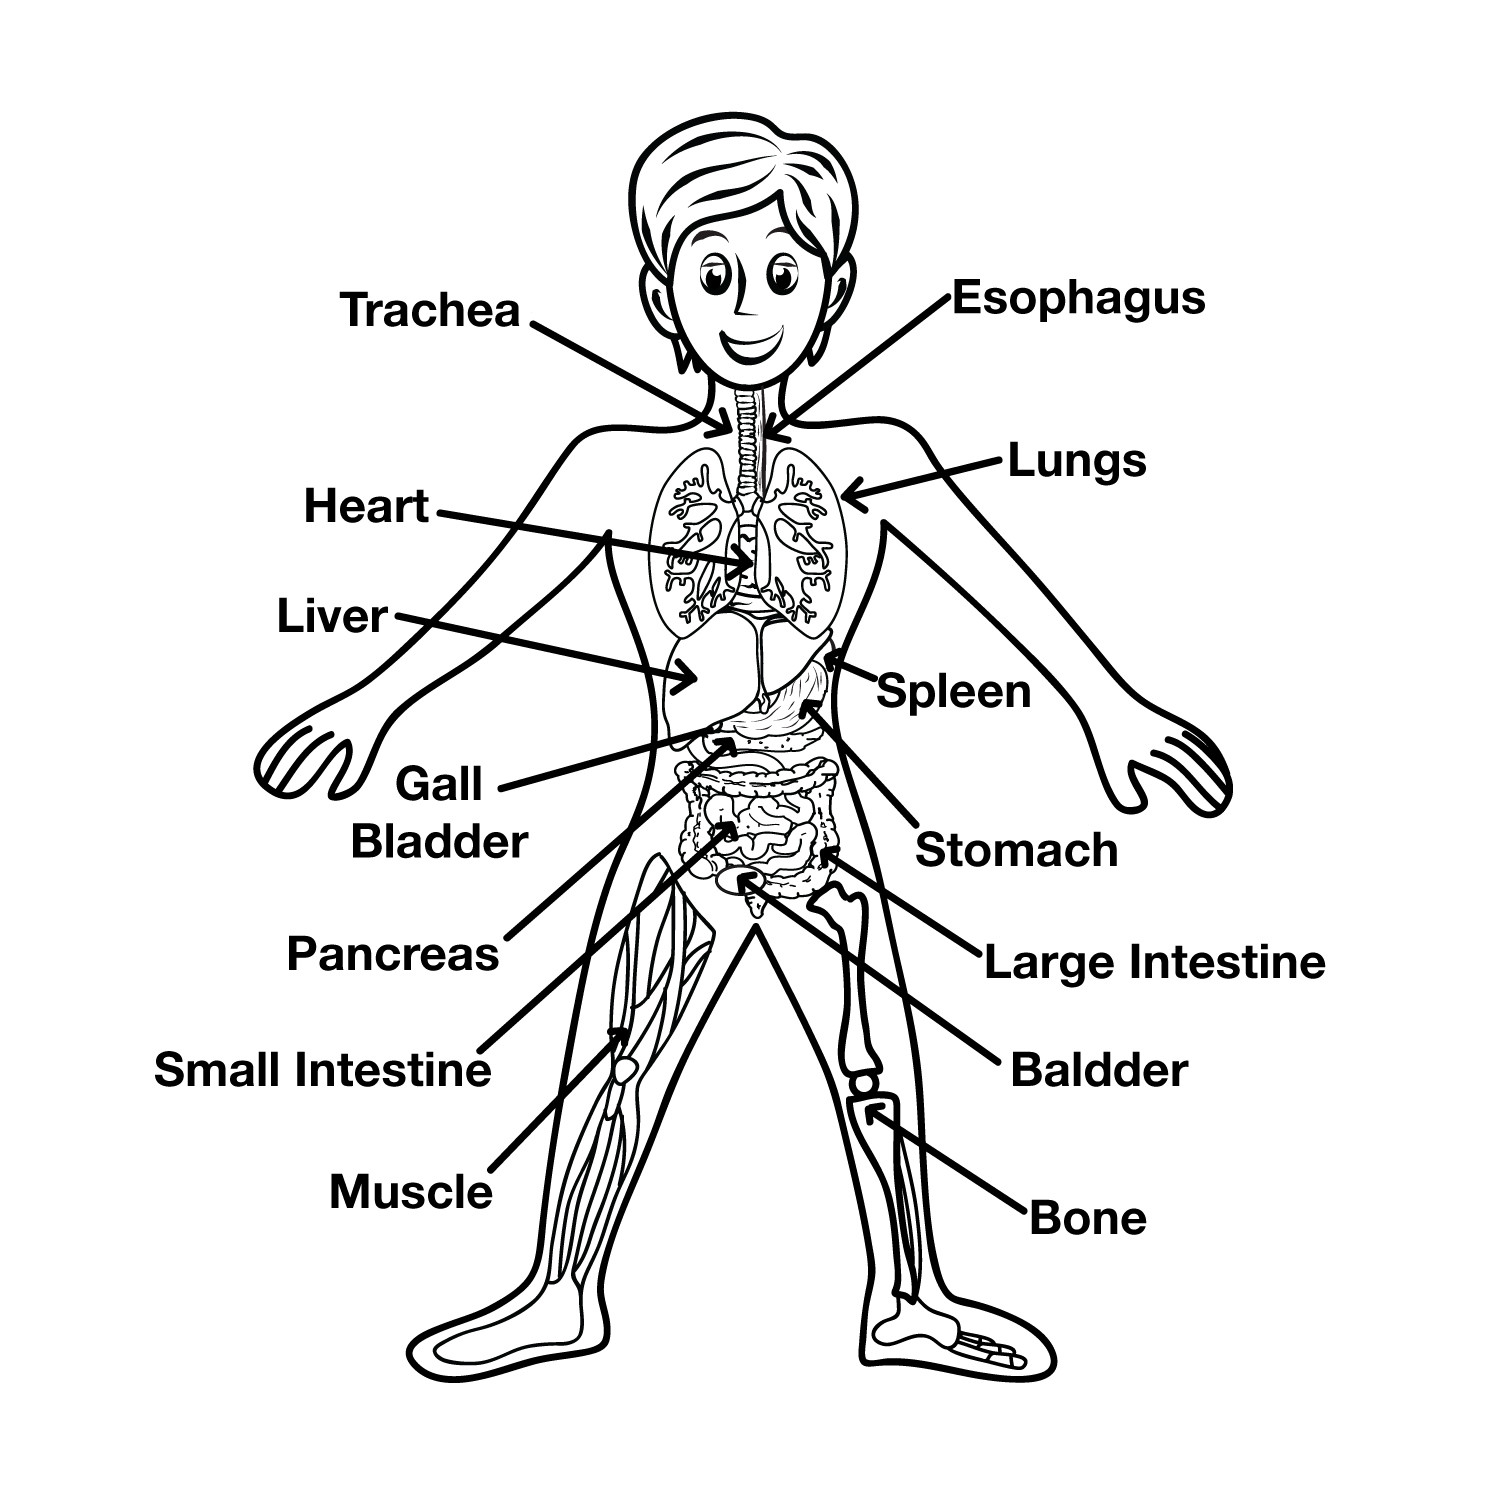 Human Body Worksheets Middle School Fractions Ks2 Grade E social Stu S Worksheets Excretory